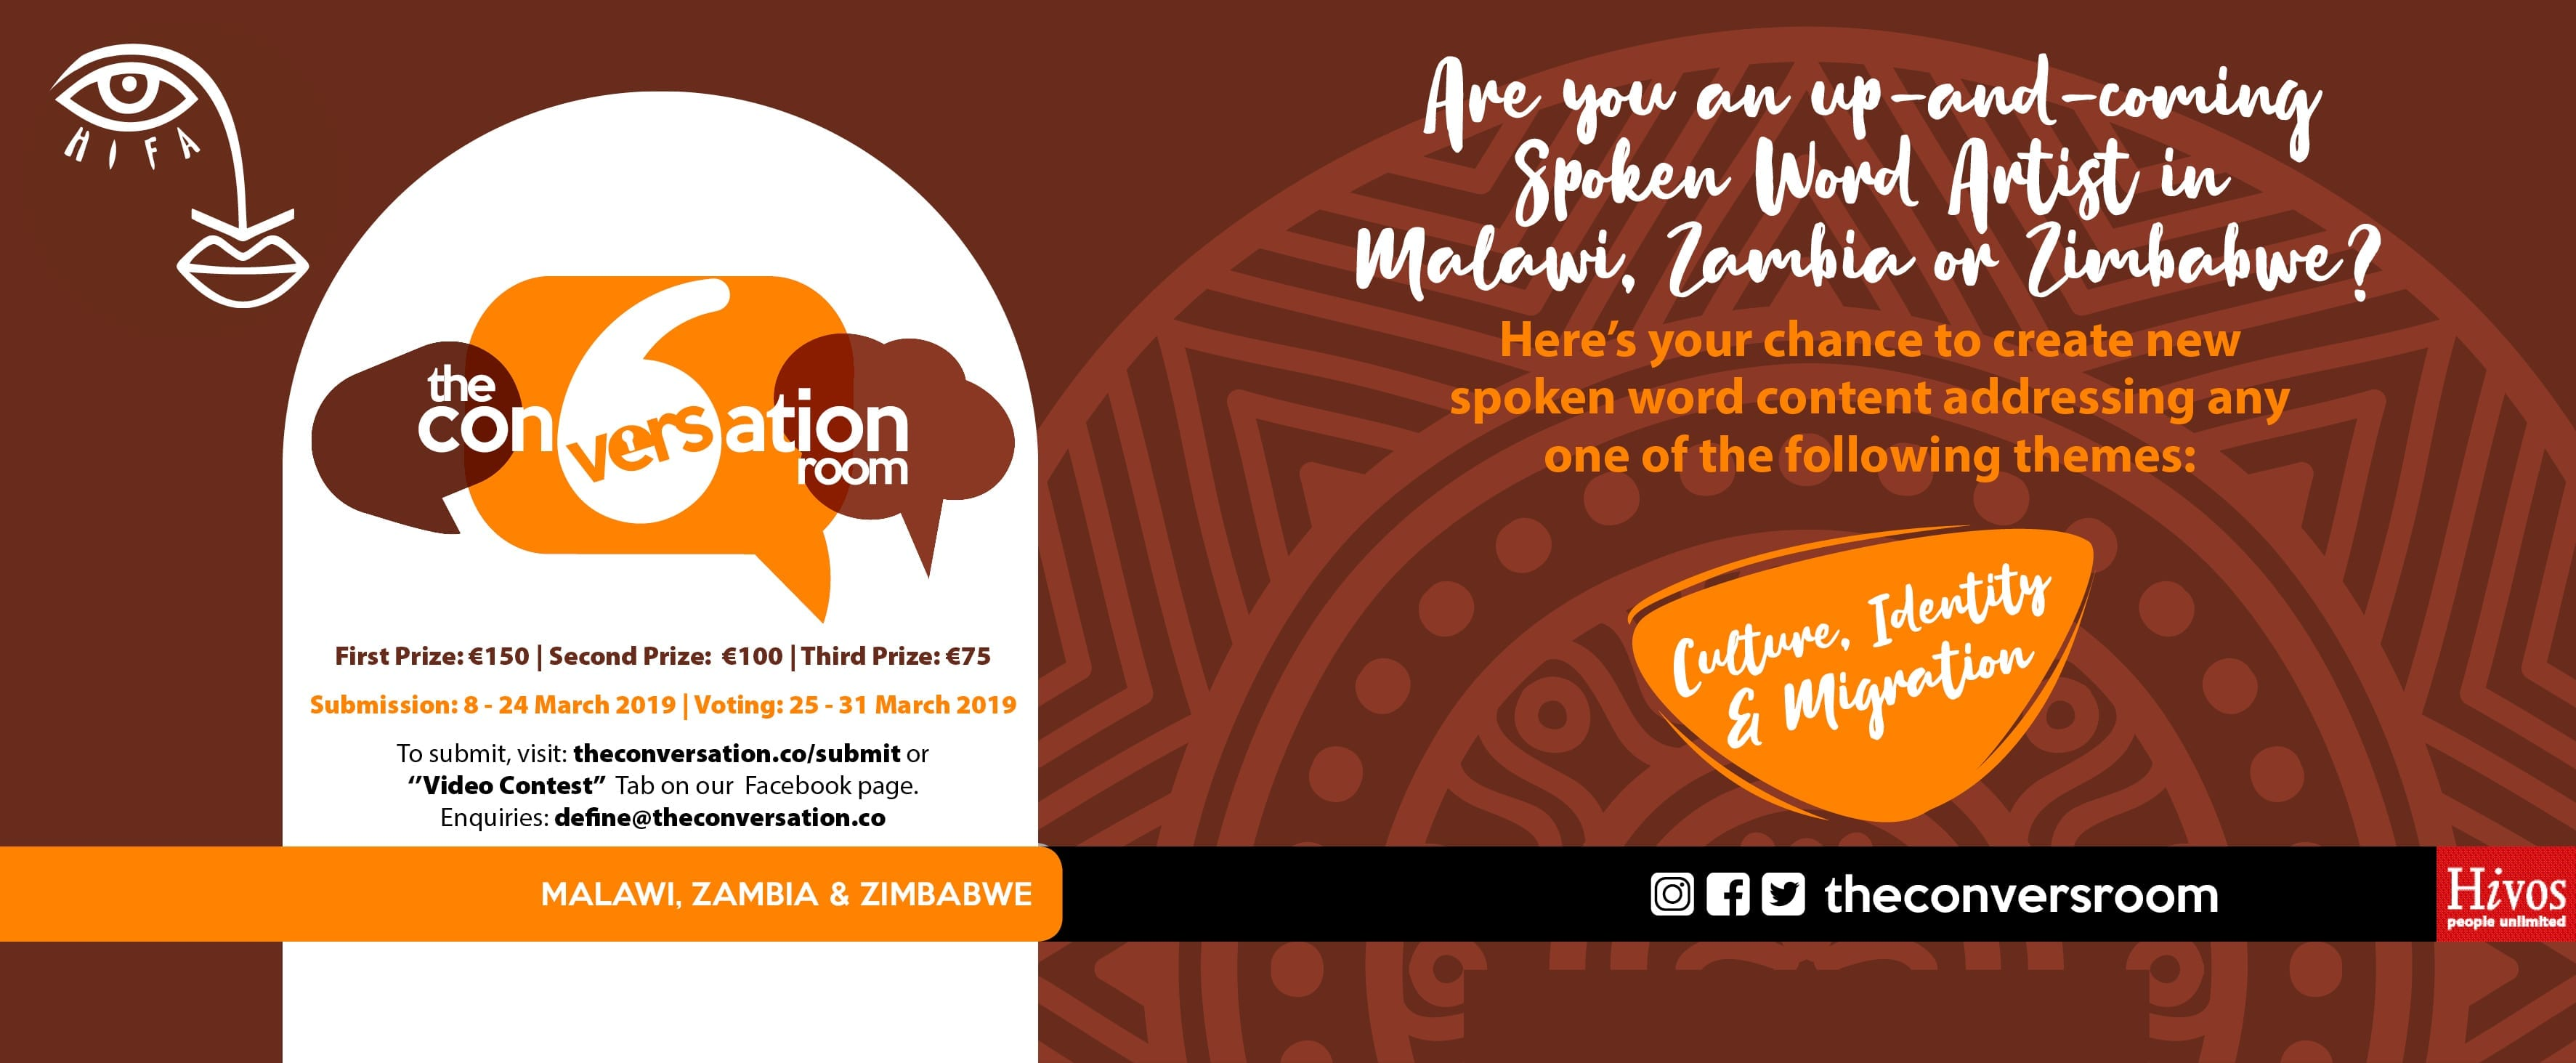 Are you an up-and-coming Spoken Word Artist in Malawi, Zambia or